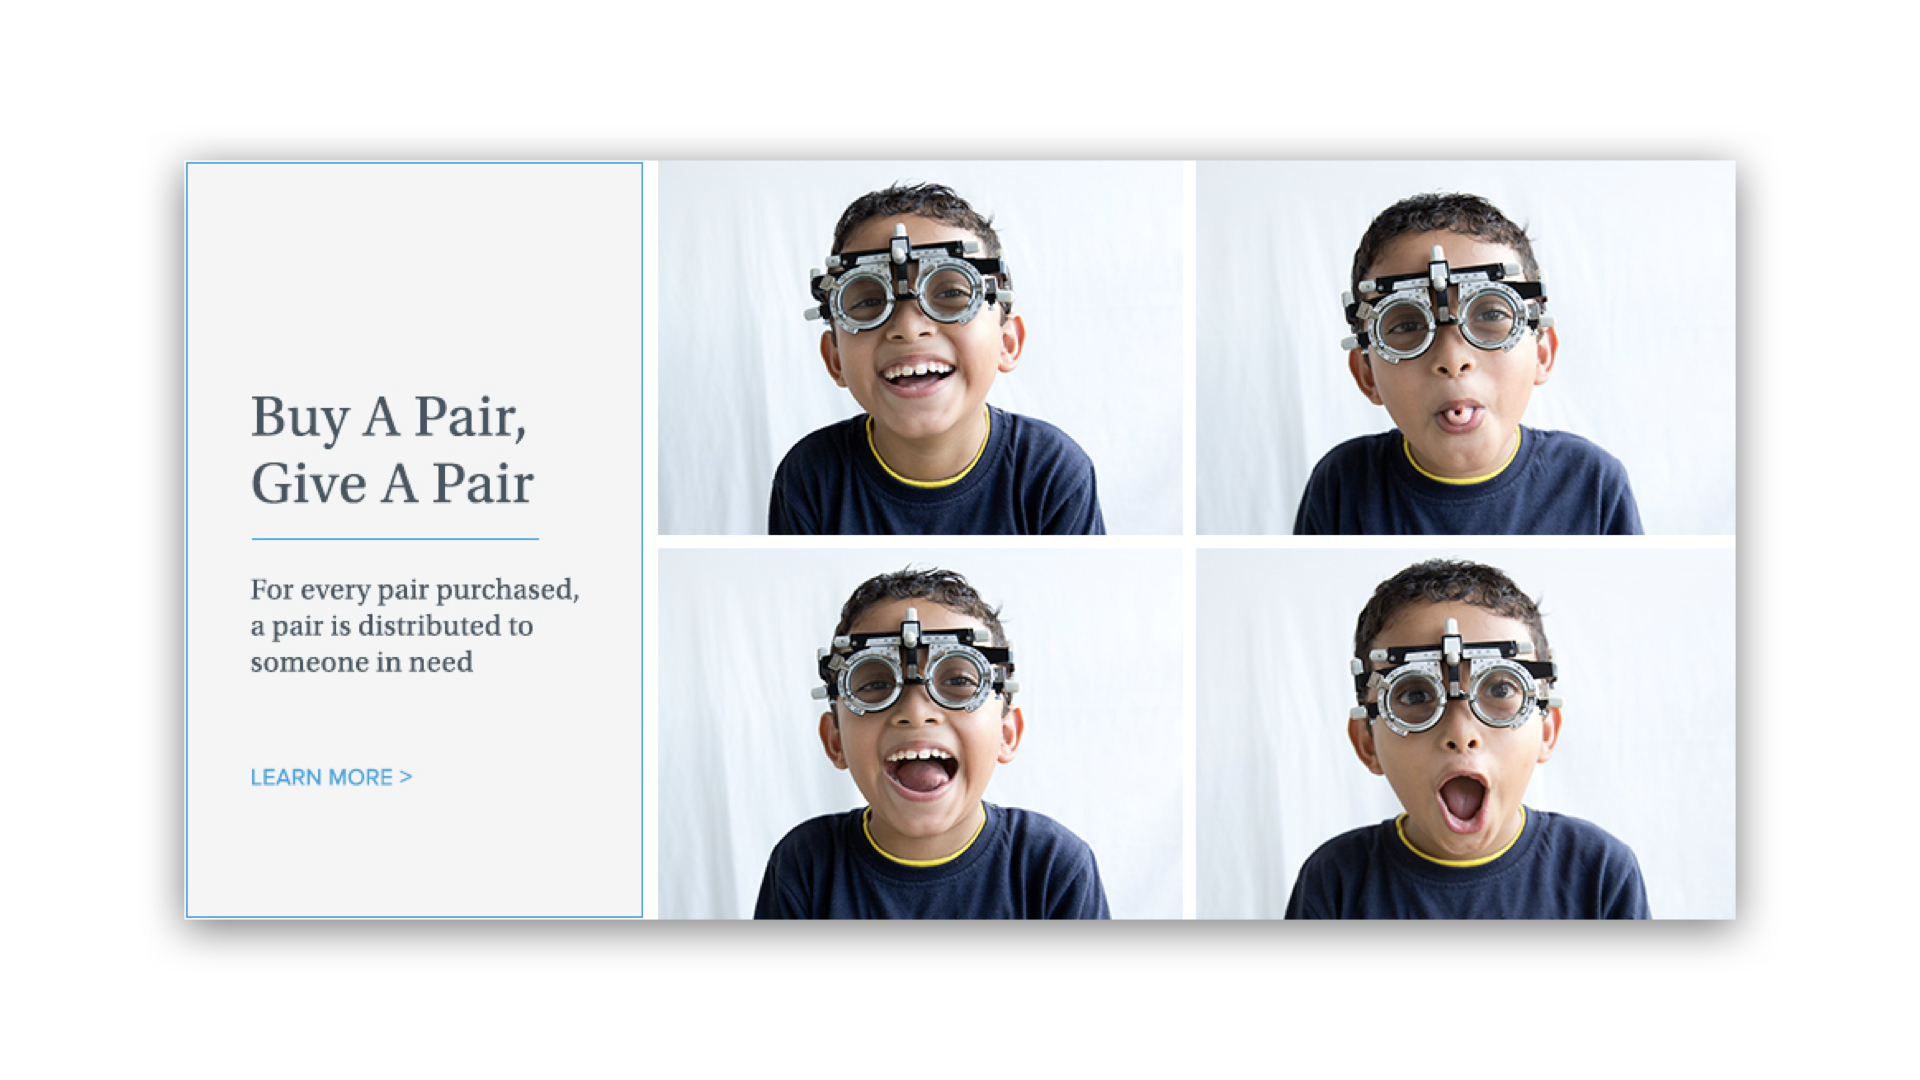 G & Co. is a DTC marketing agency: Warby Parker's Buy A Pair, Give A Pair program donates a pair of glasses to someone in need for every pair bought